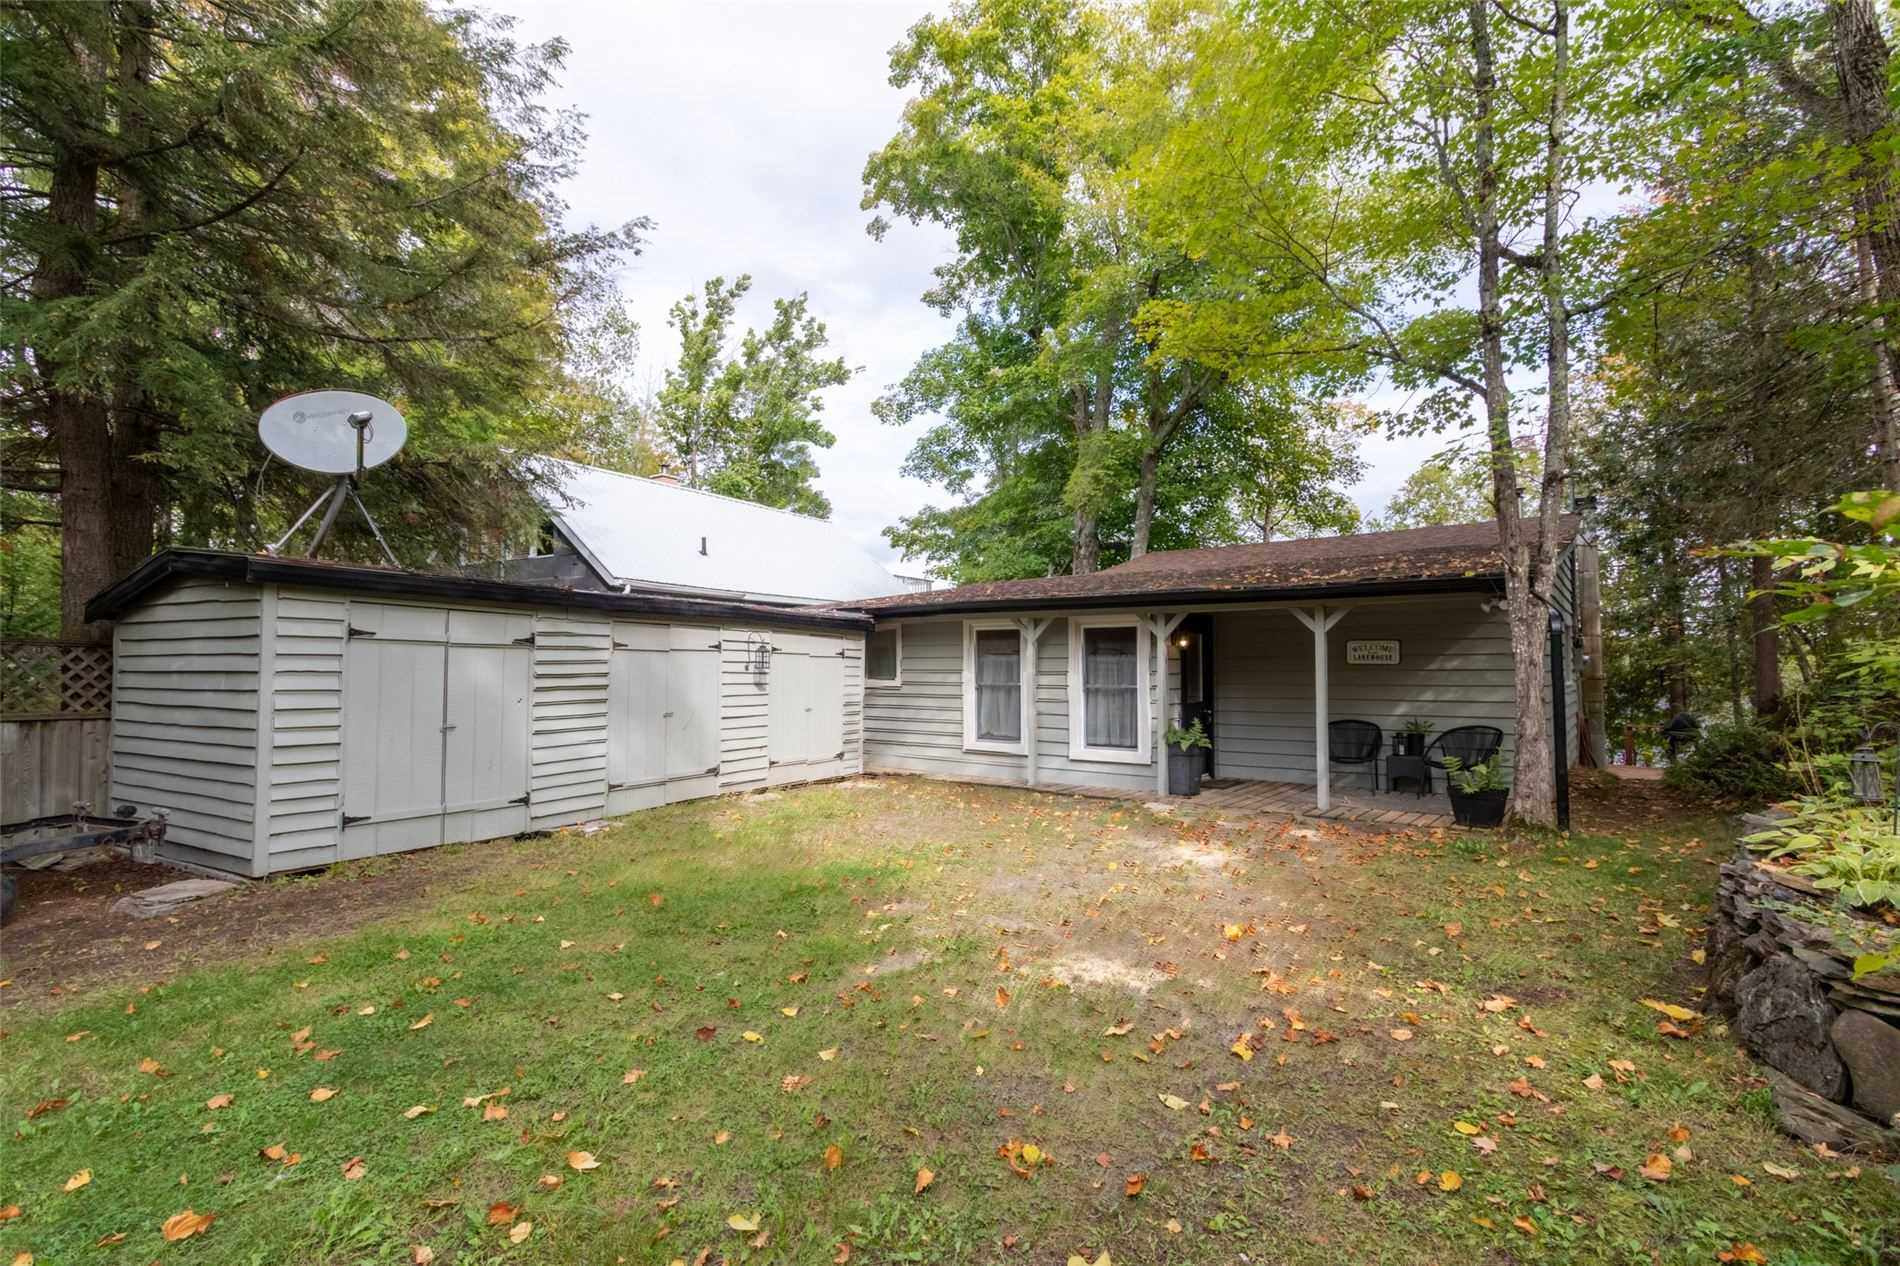 Detached house For Sale In Havelock-Belmont-Methuen